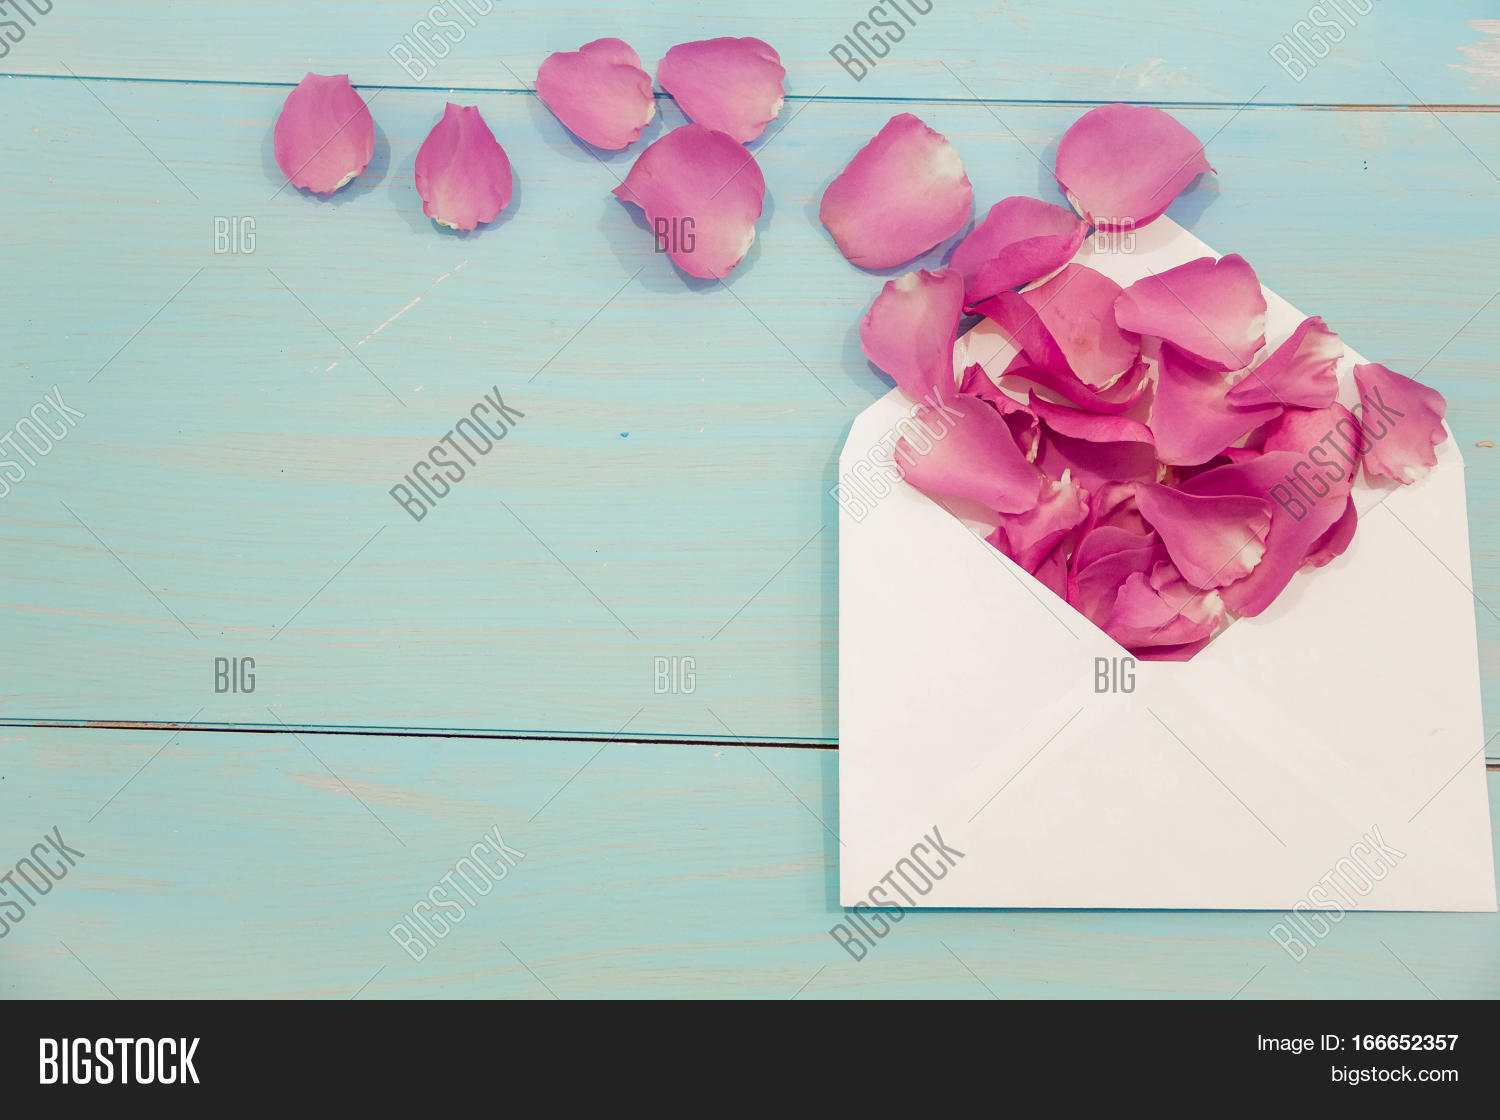 Blank white post cards image photo free trial bigstock blank white post cards empty postcard postcrossing love letter still life m4hsunfo